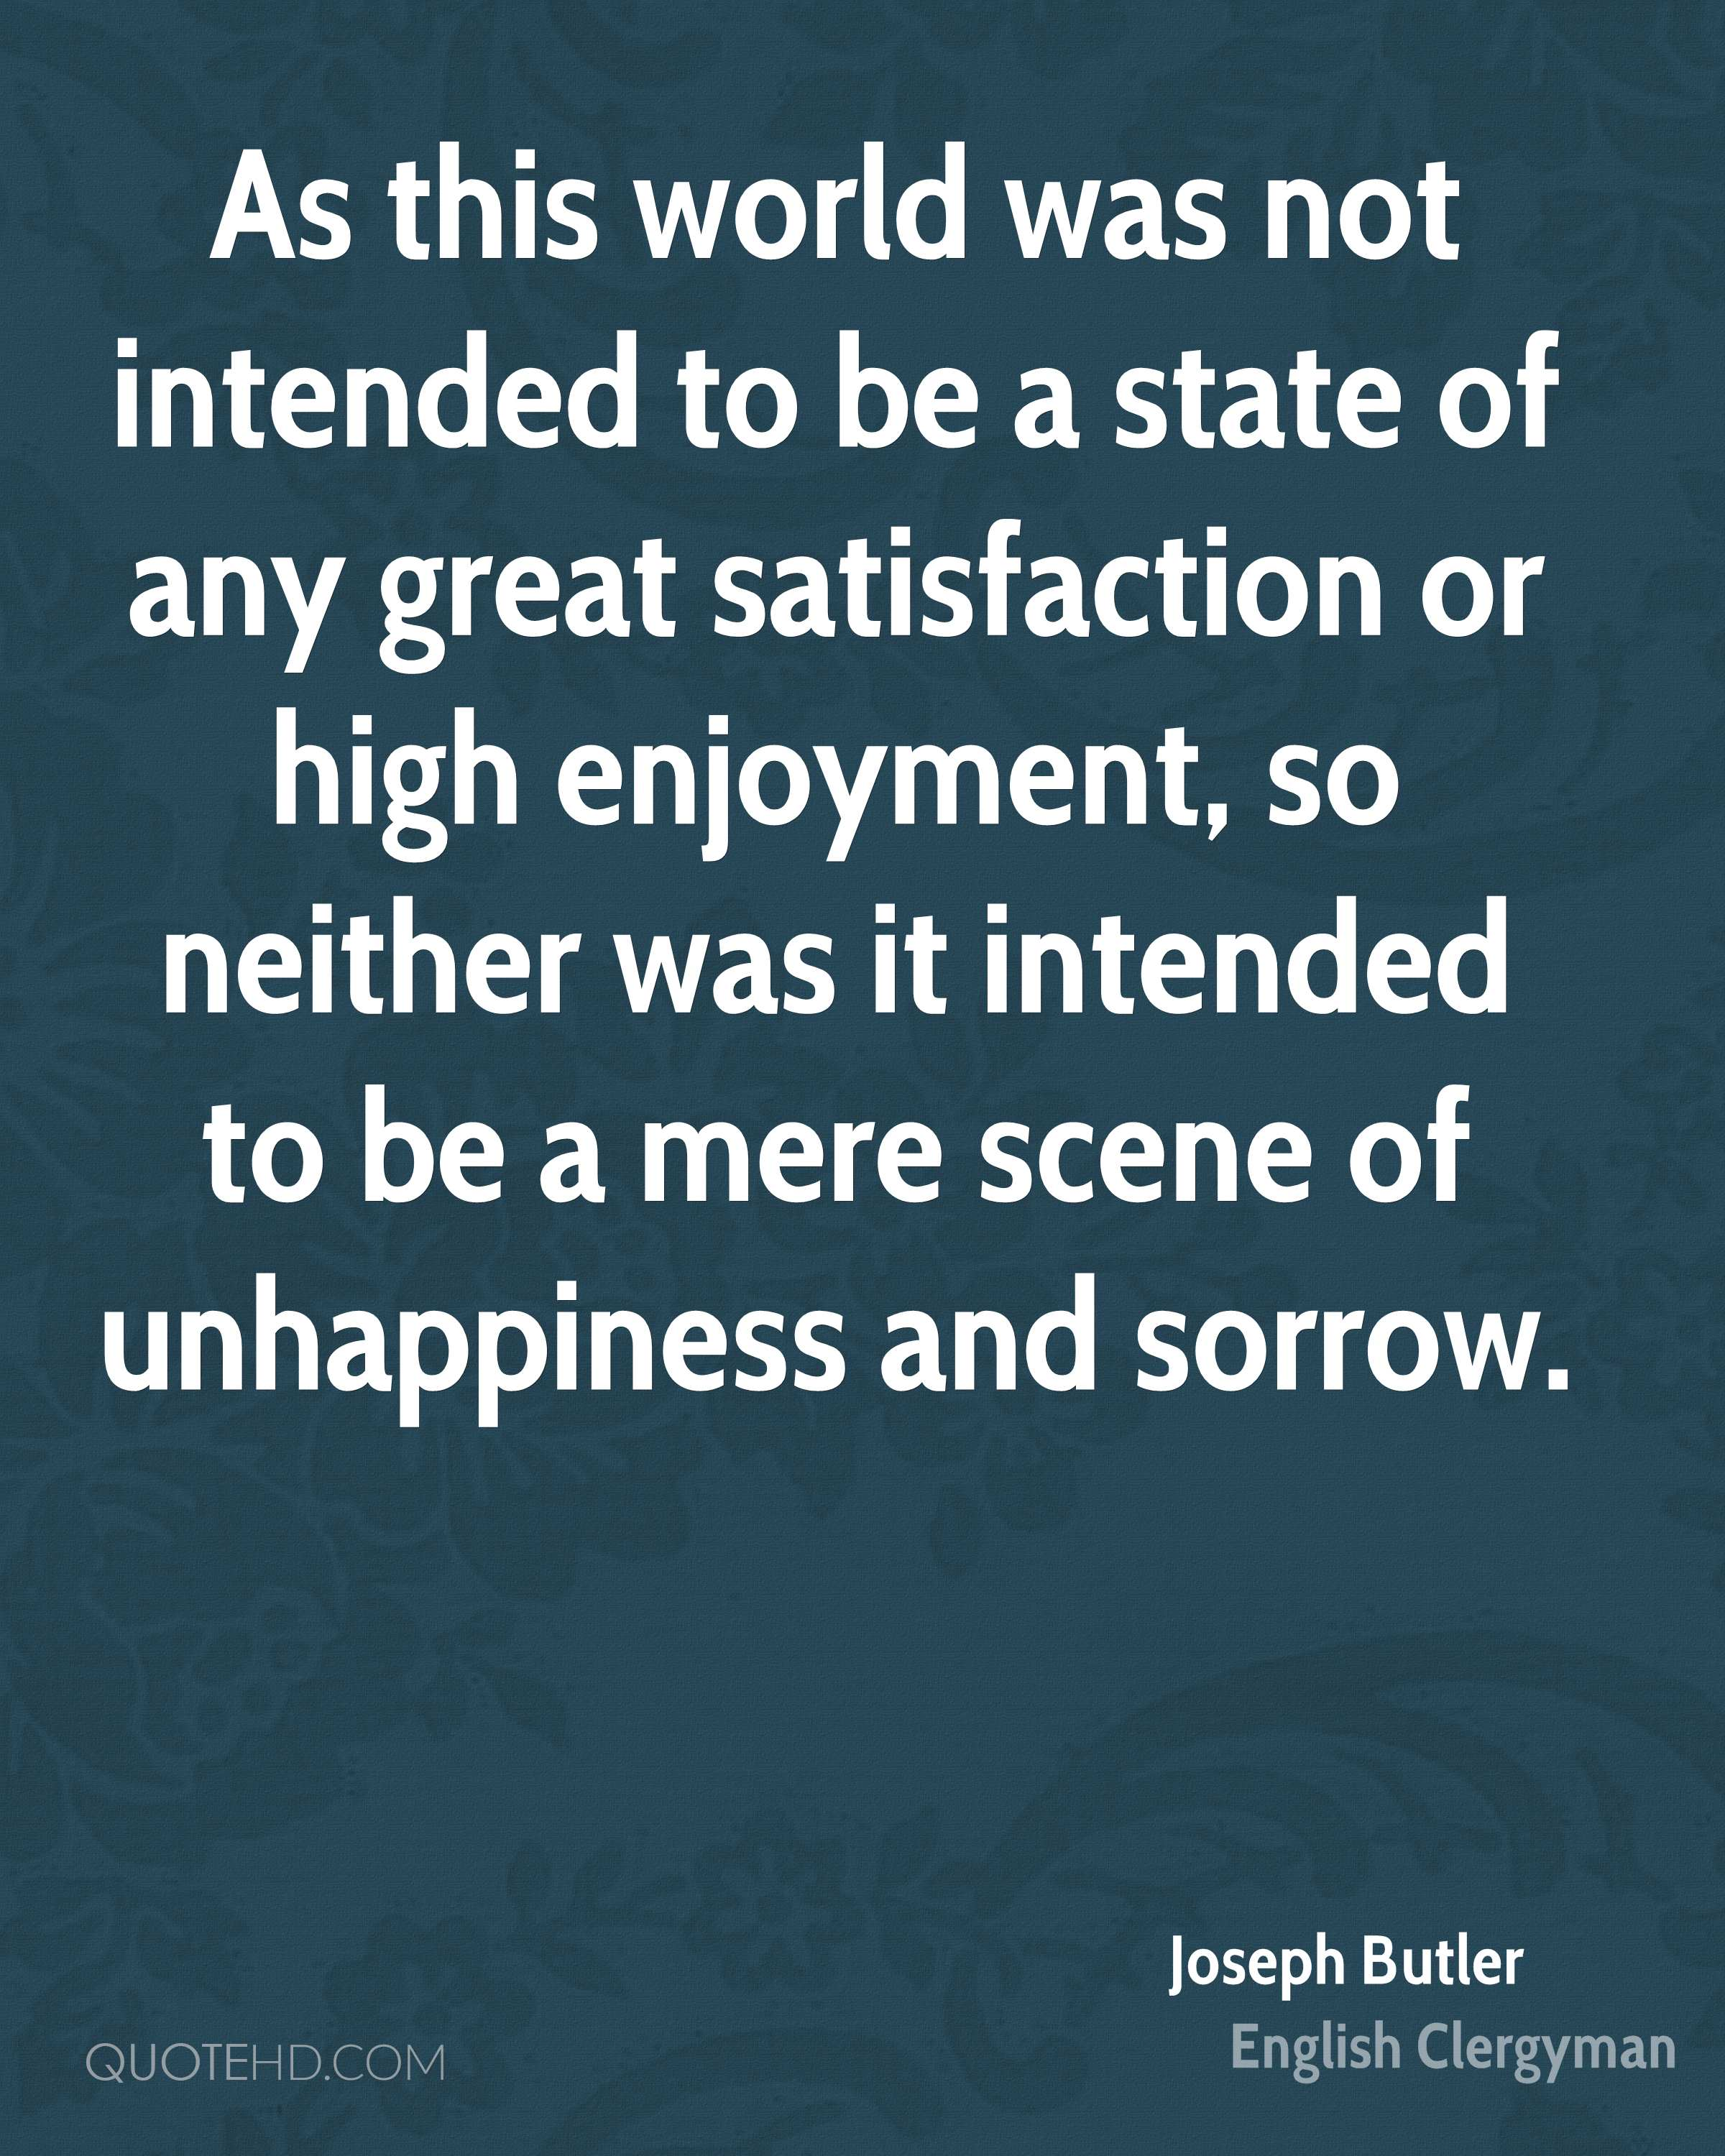 As this world was not intended to be a state of any great satisfaction or high enjoyment, so neither was it intended to be a mere scene of unhappiness and sorrow.